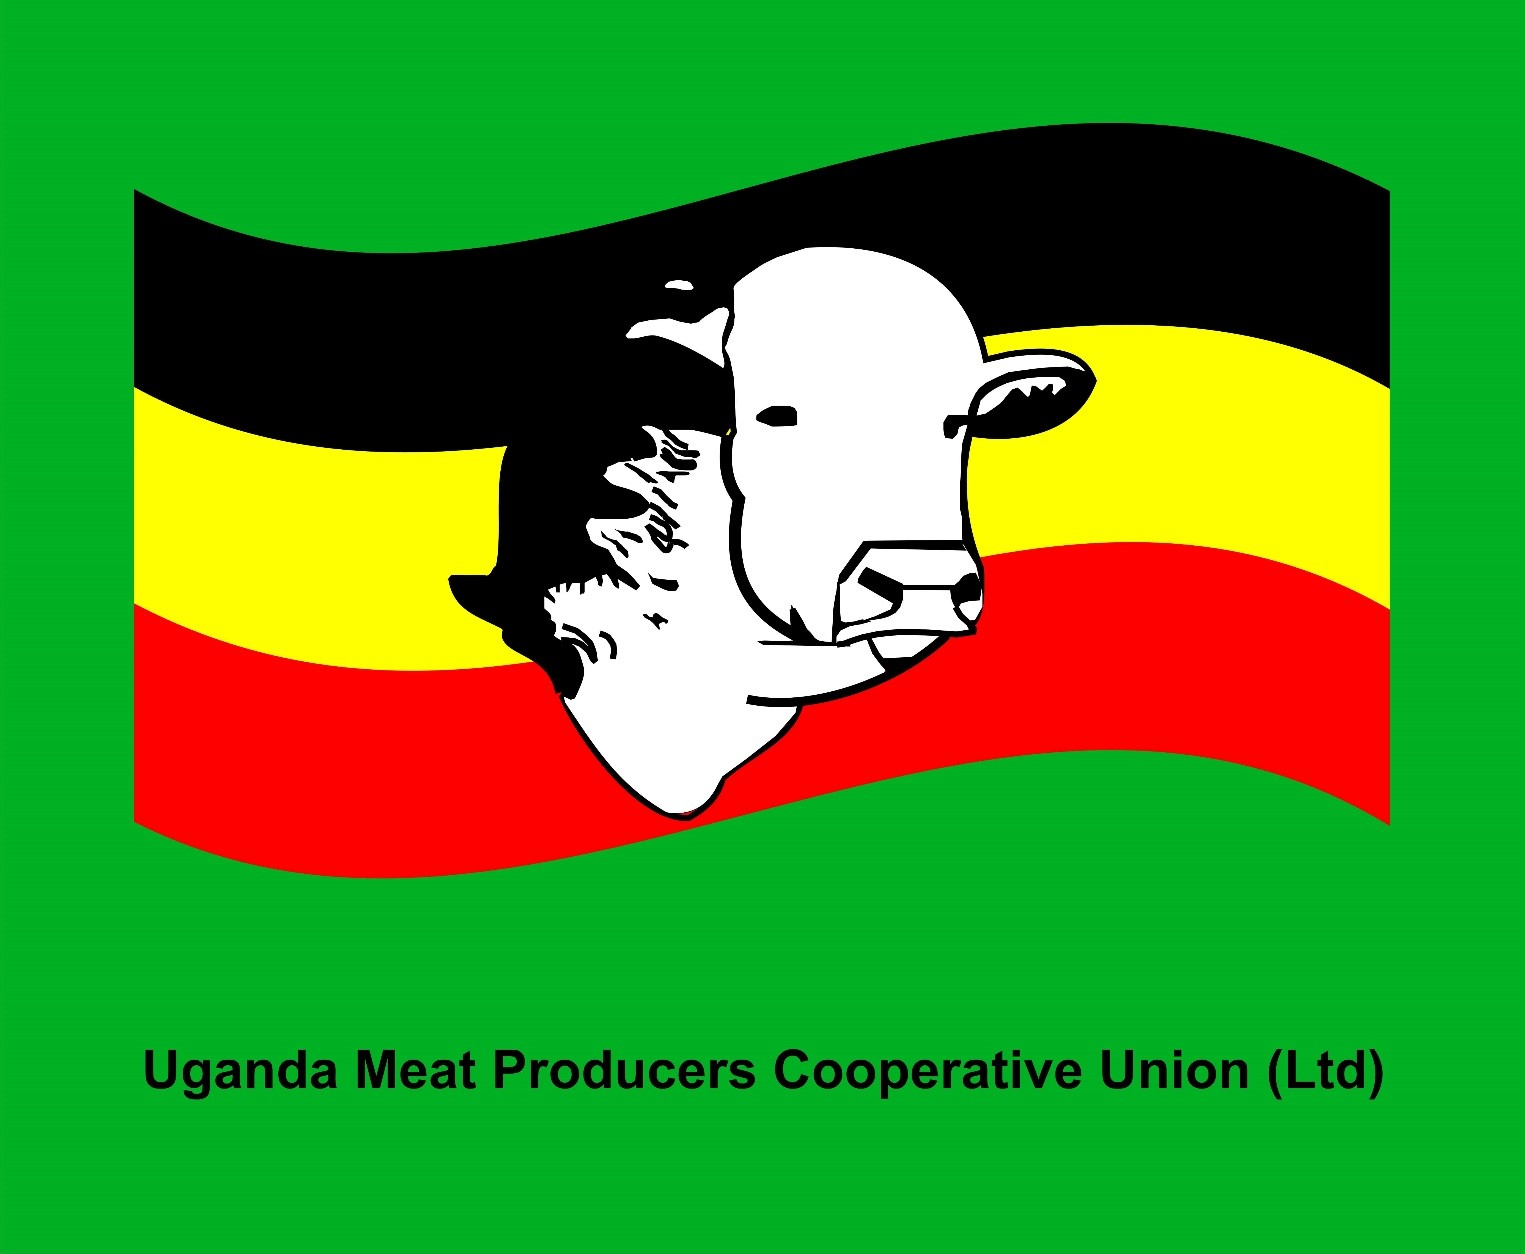 Uganda Meat Producers Cooperative Union Ltd.